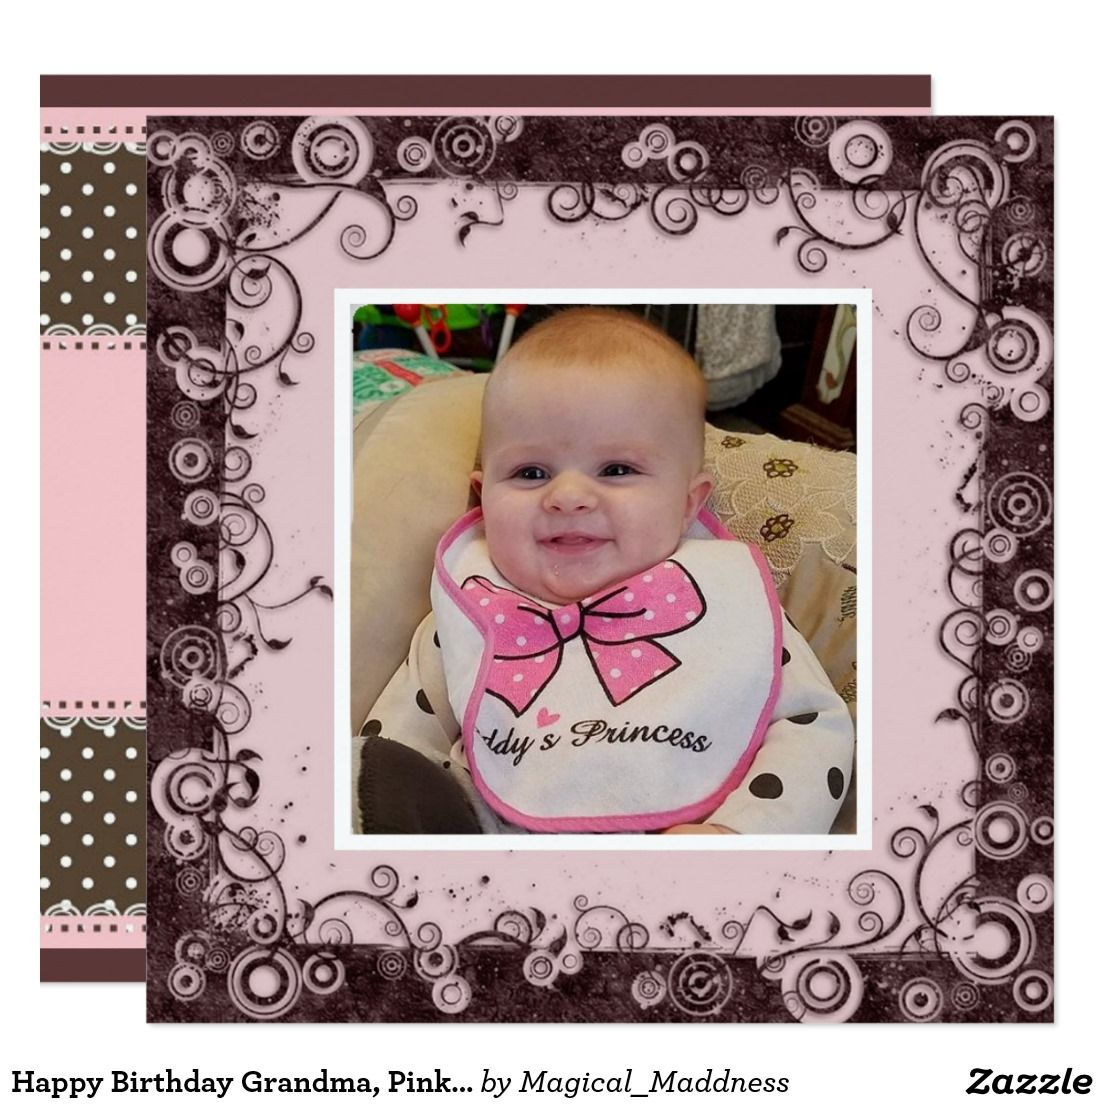 Happy birthday grandma pink and brown birthday for baby